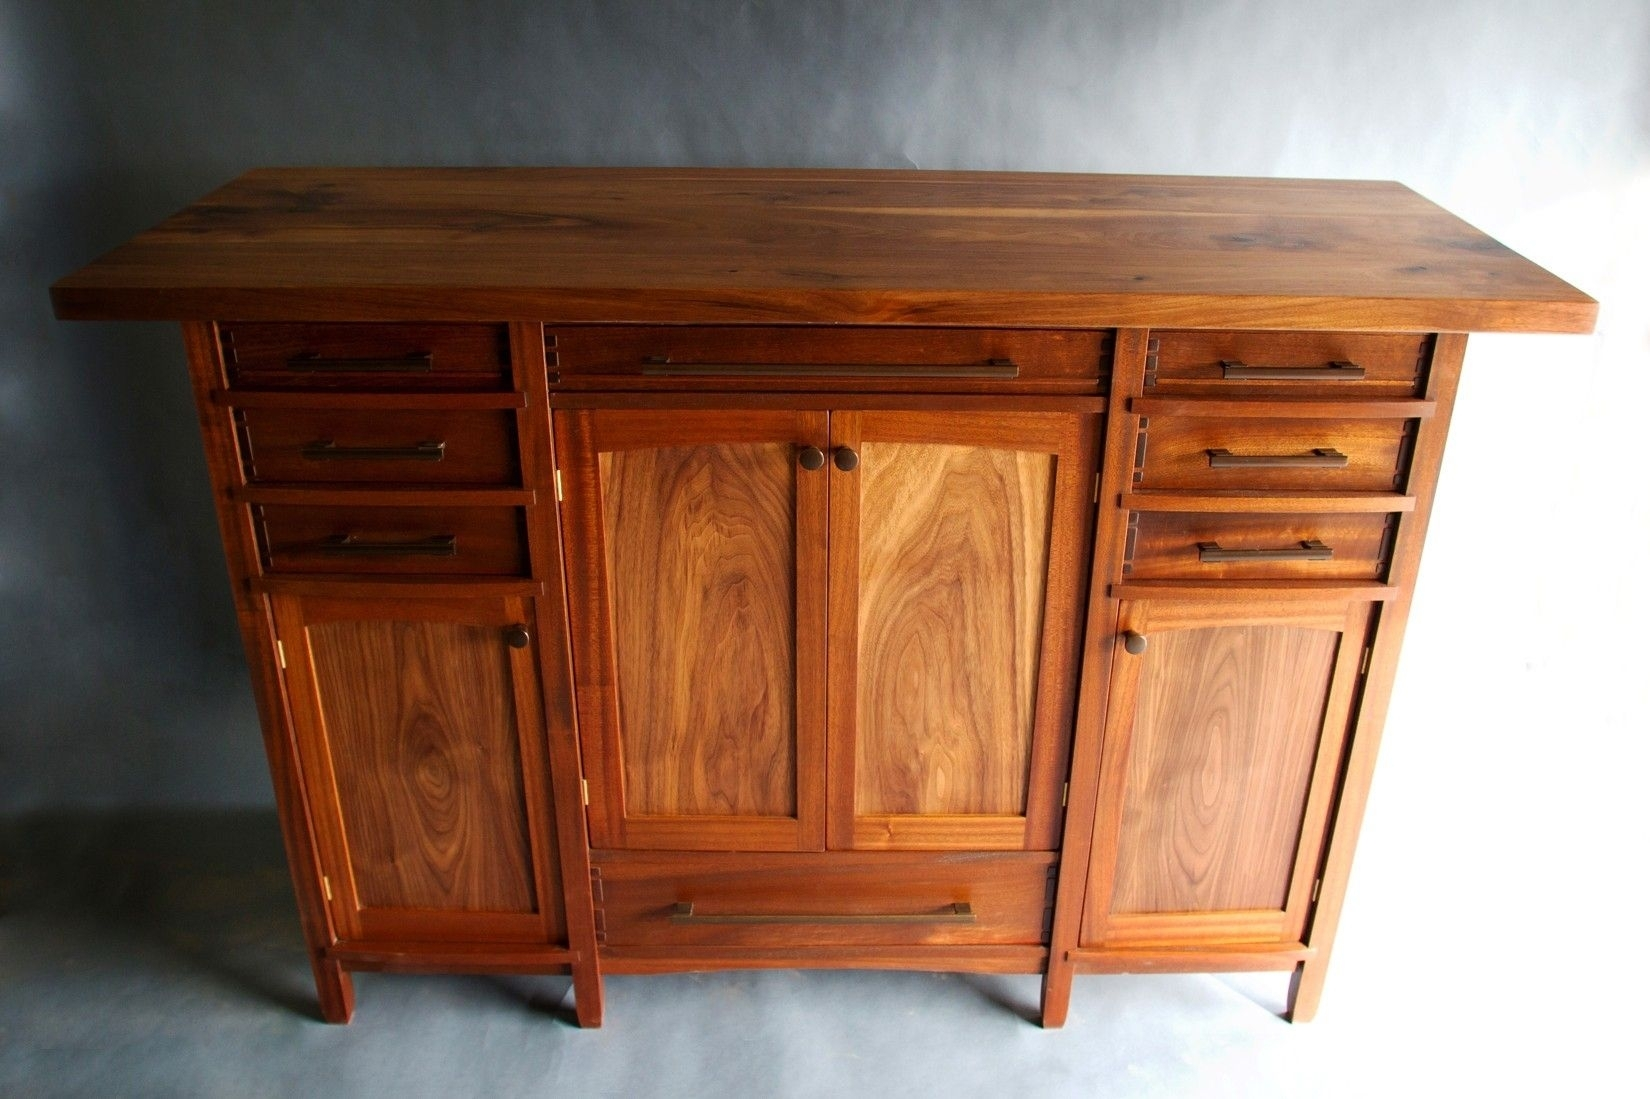 Handmade Walnut And Sapele Custom Sideboardbow River Craftsman with regard to Craftsman Sideboards (Image 15 of 30)